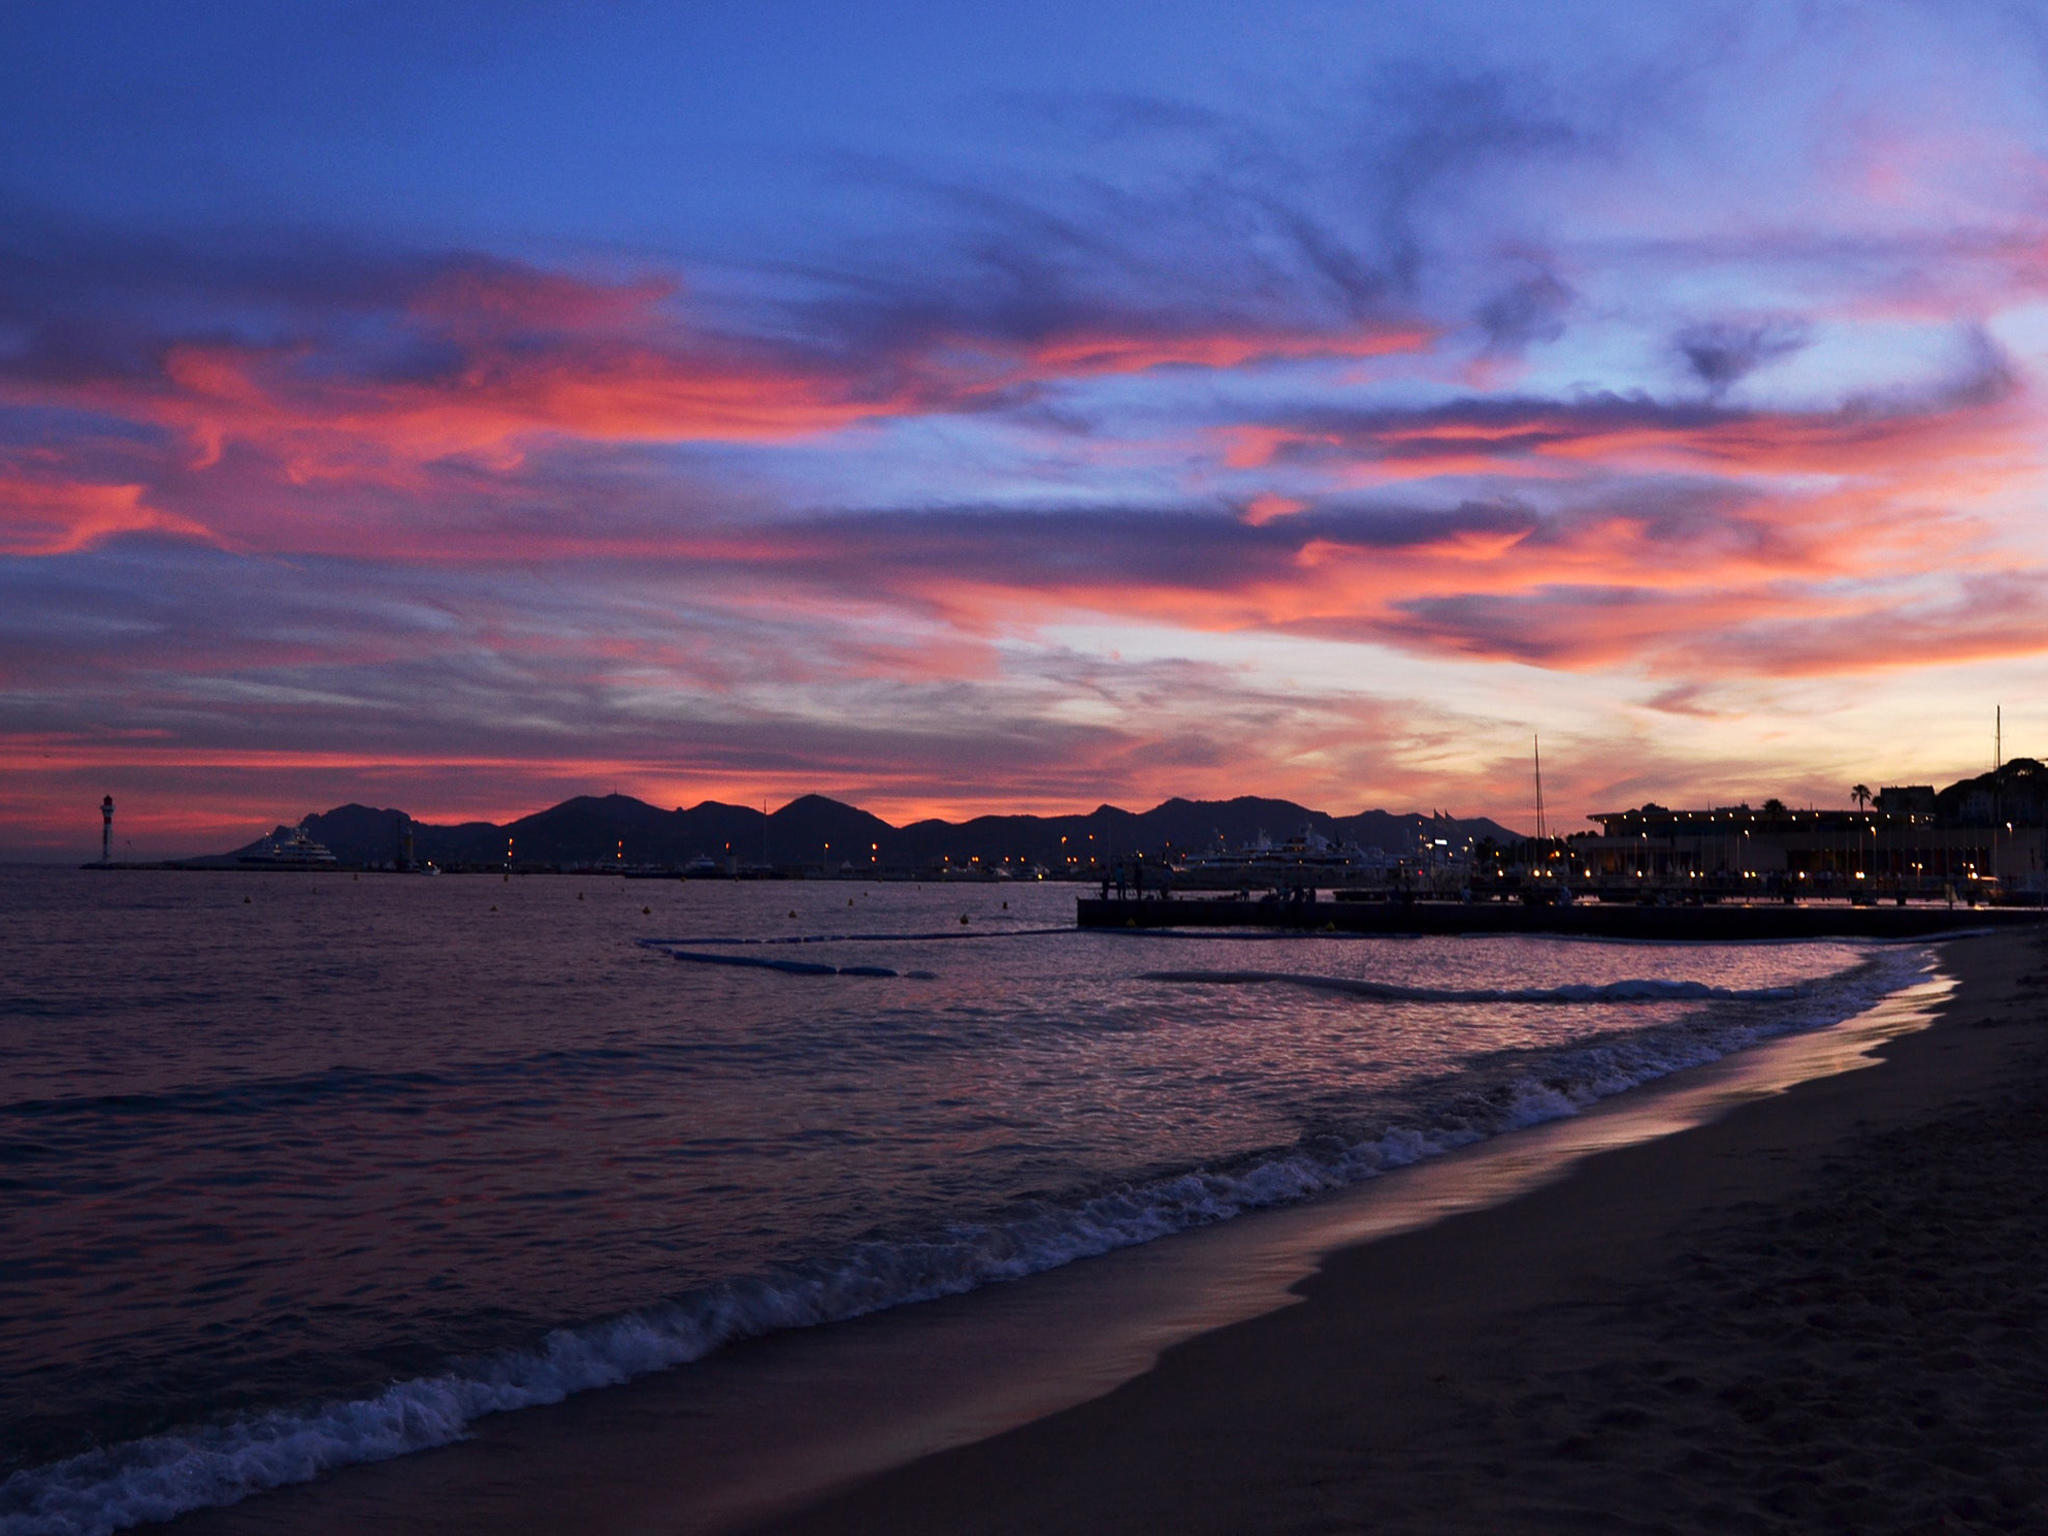 A sunset over the beach at Cannes in France